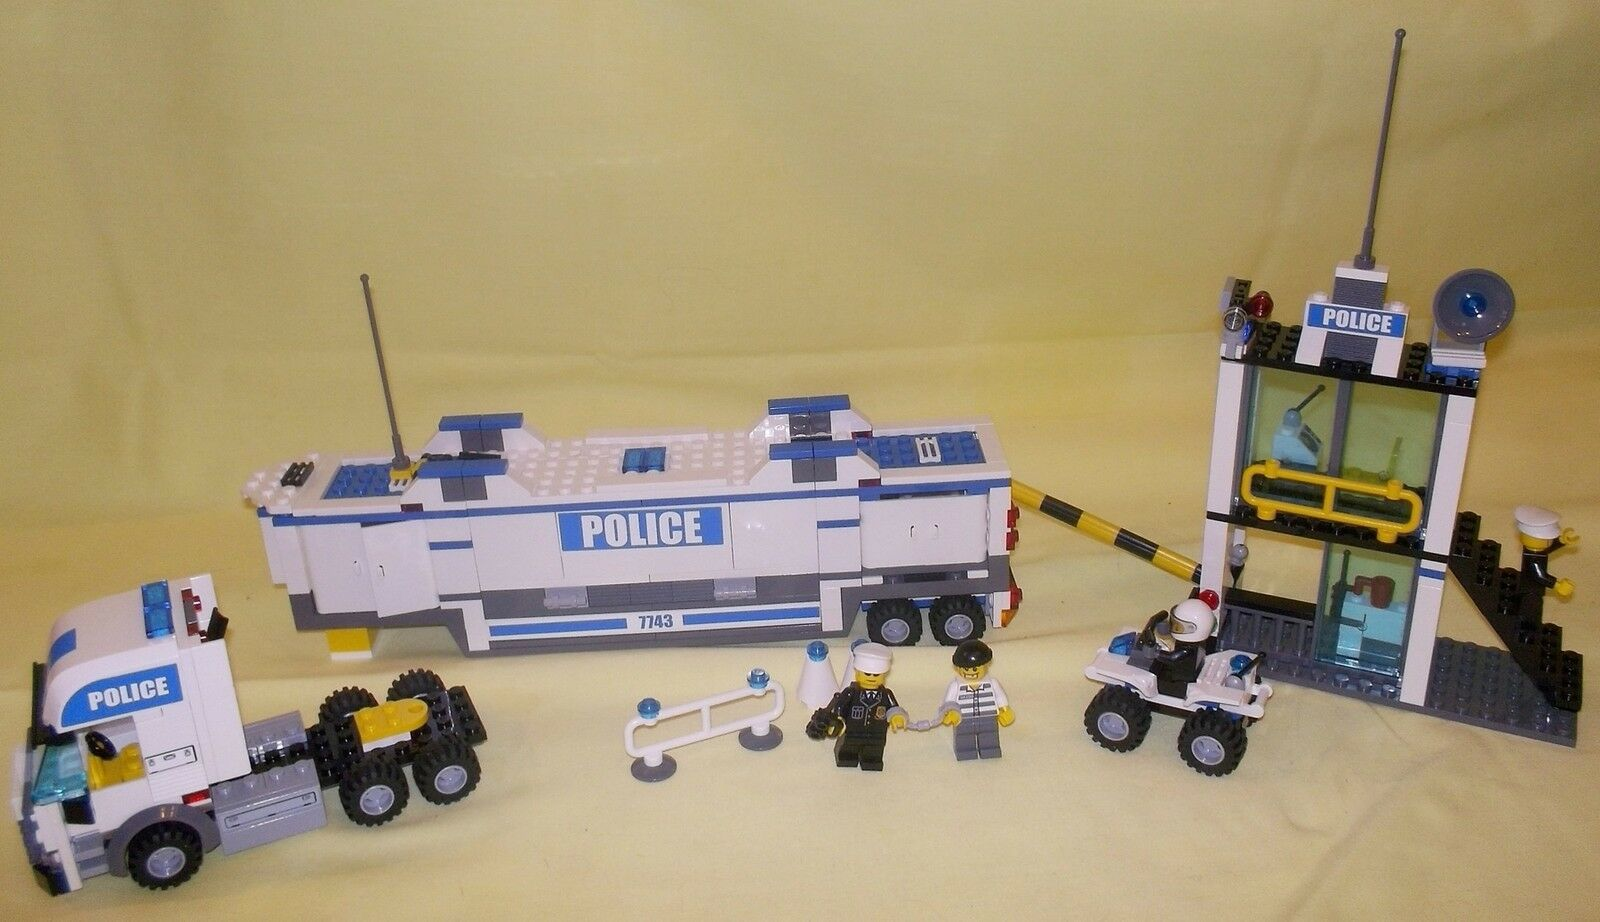 LEGO CITY POLICE COMMAND CENTRE 7743 (3)